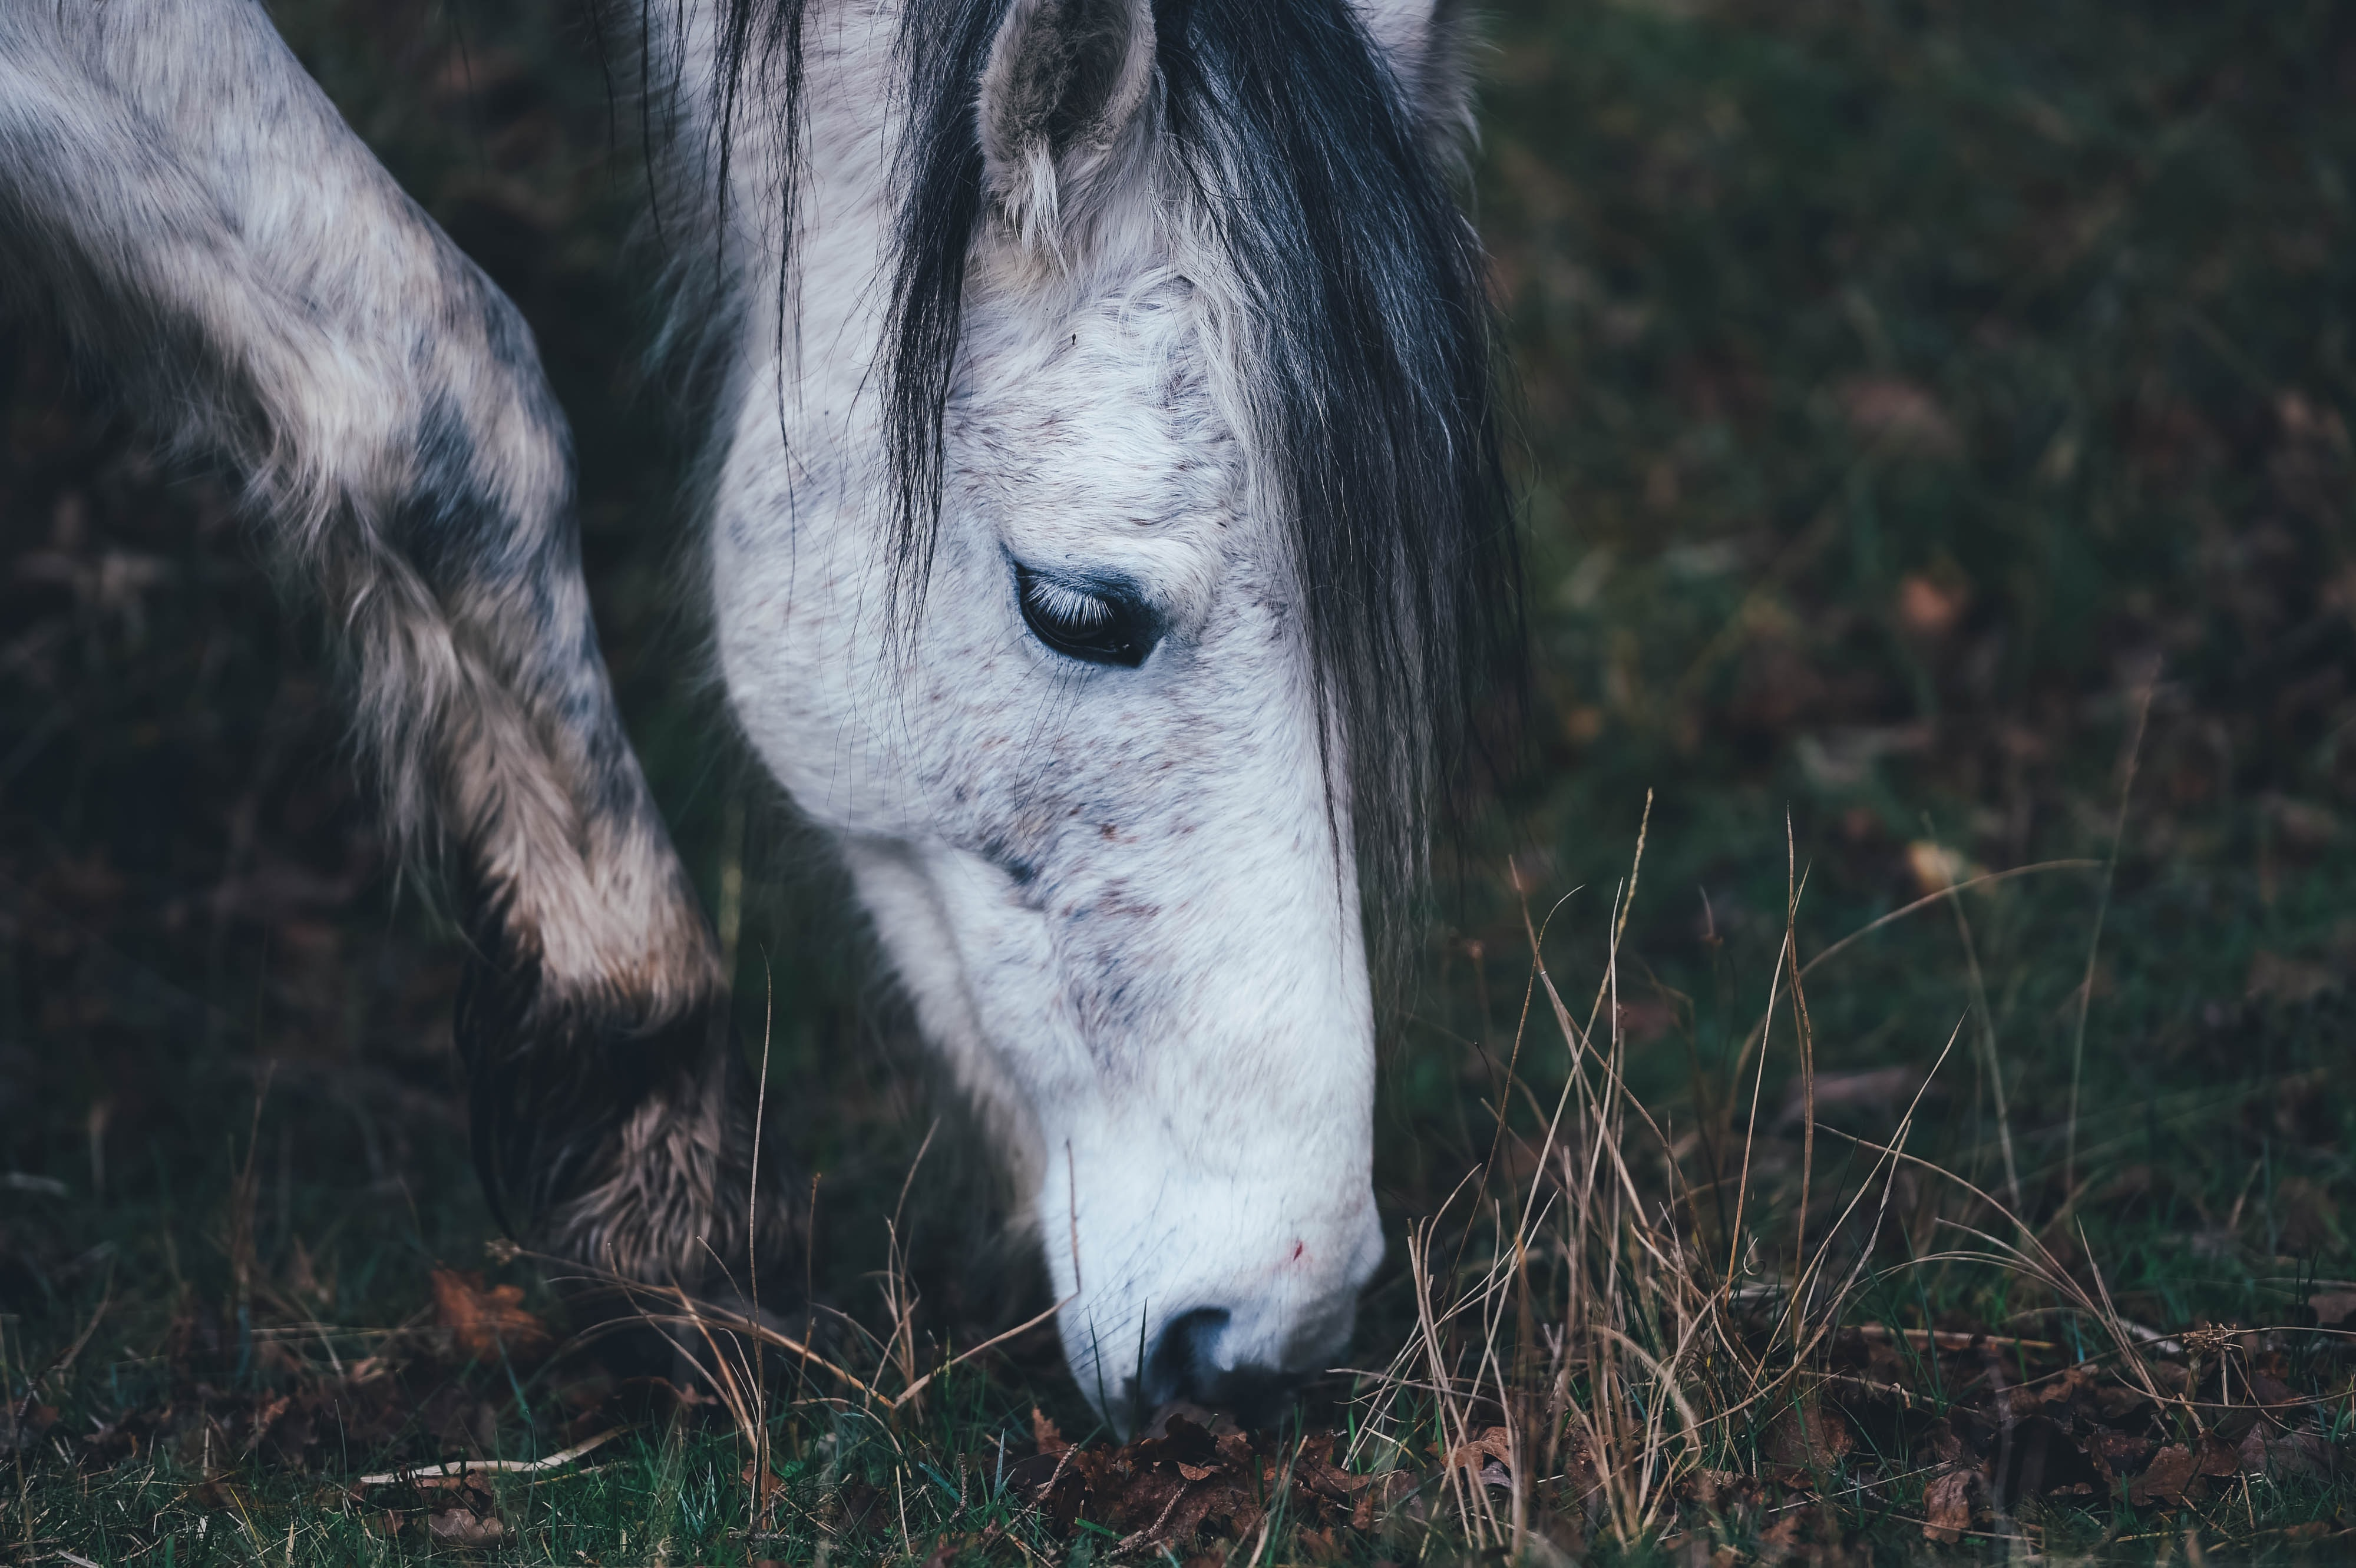 A close-up of the head of a gray horse grazing in the field